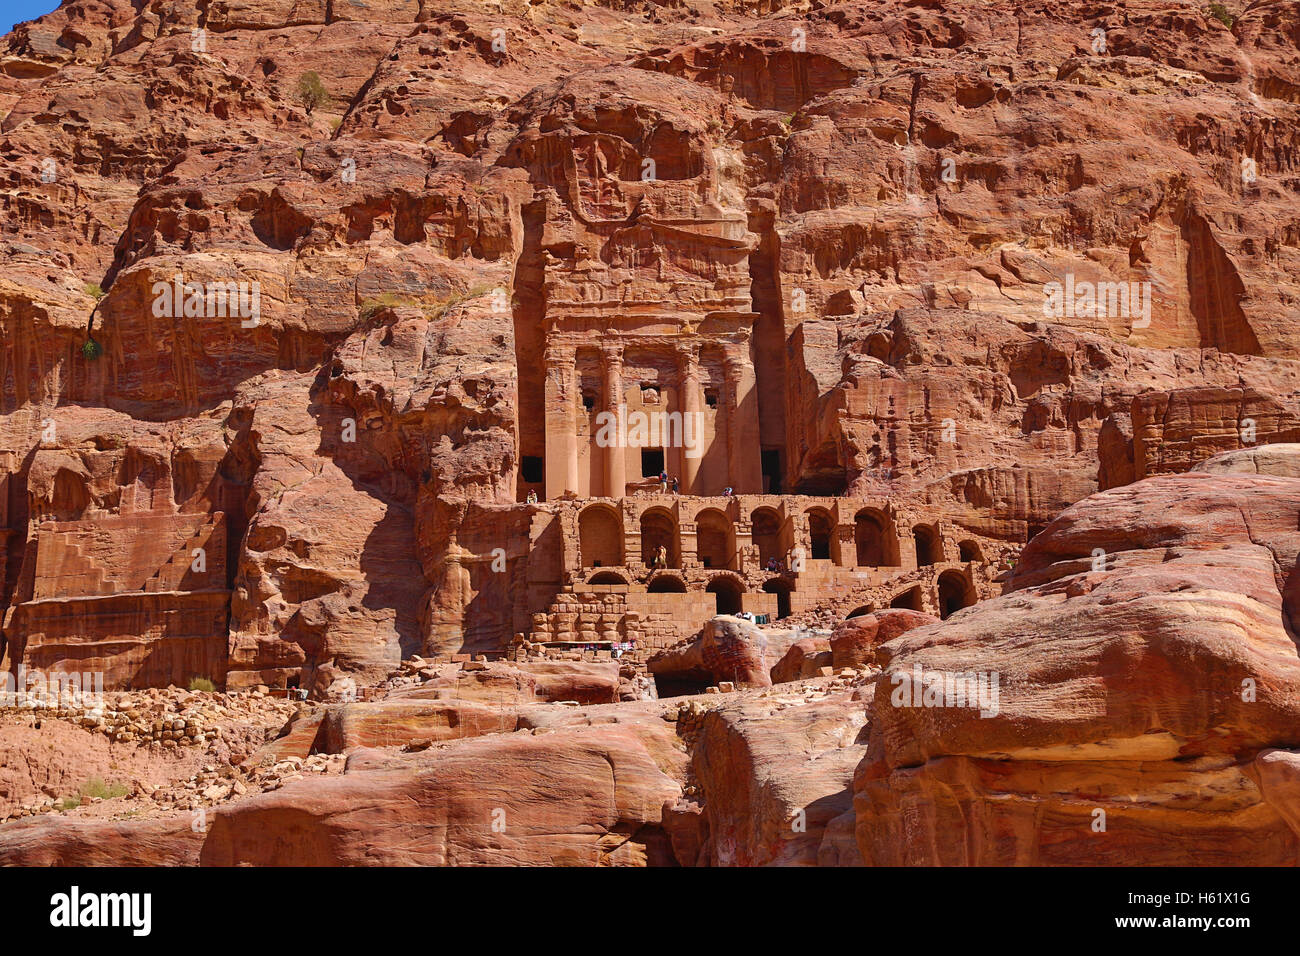 The Urn Tomb of the Royal Tombs in the rock city of Petra, Jordan Stock Photo